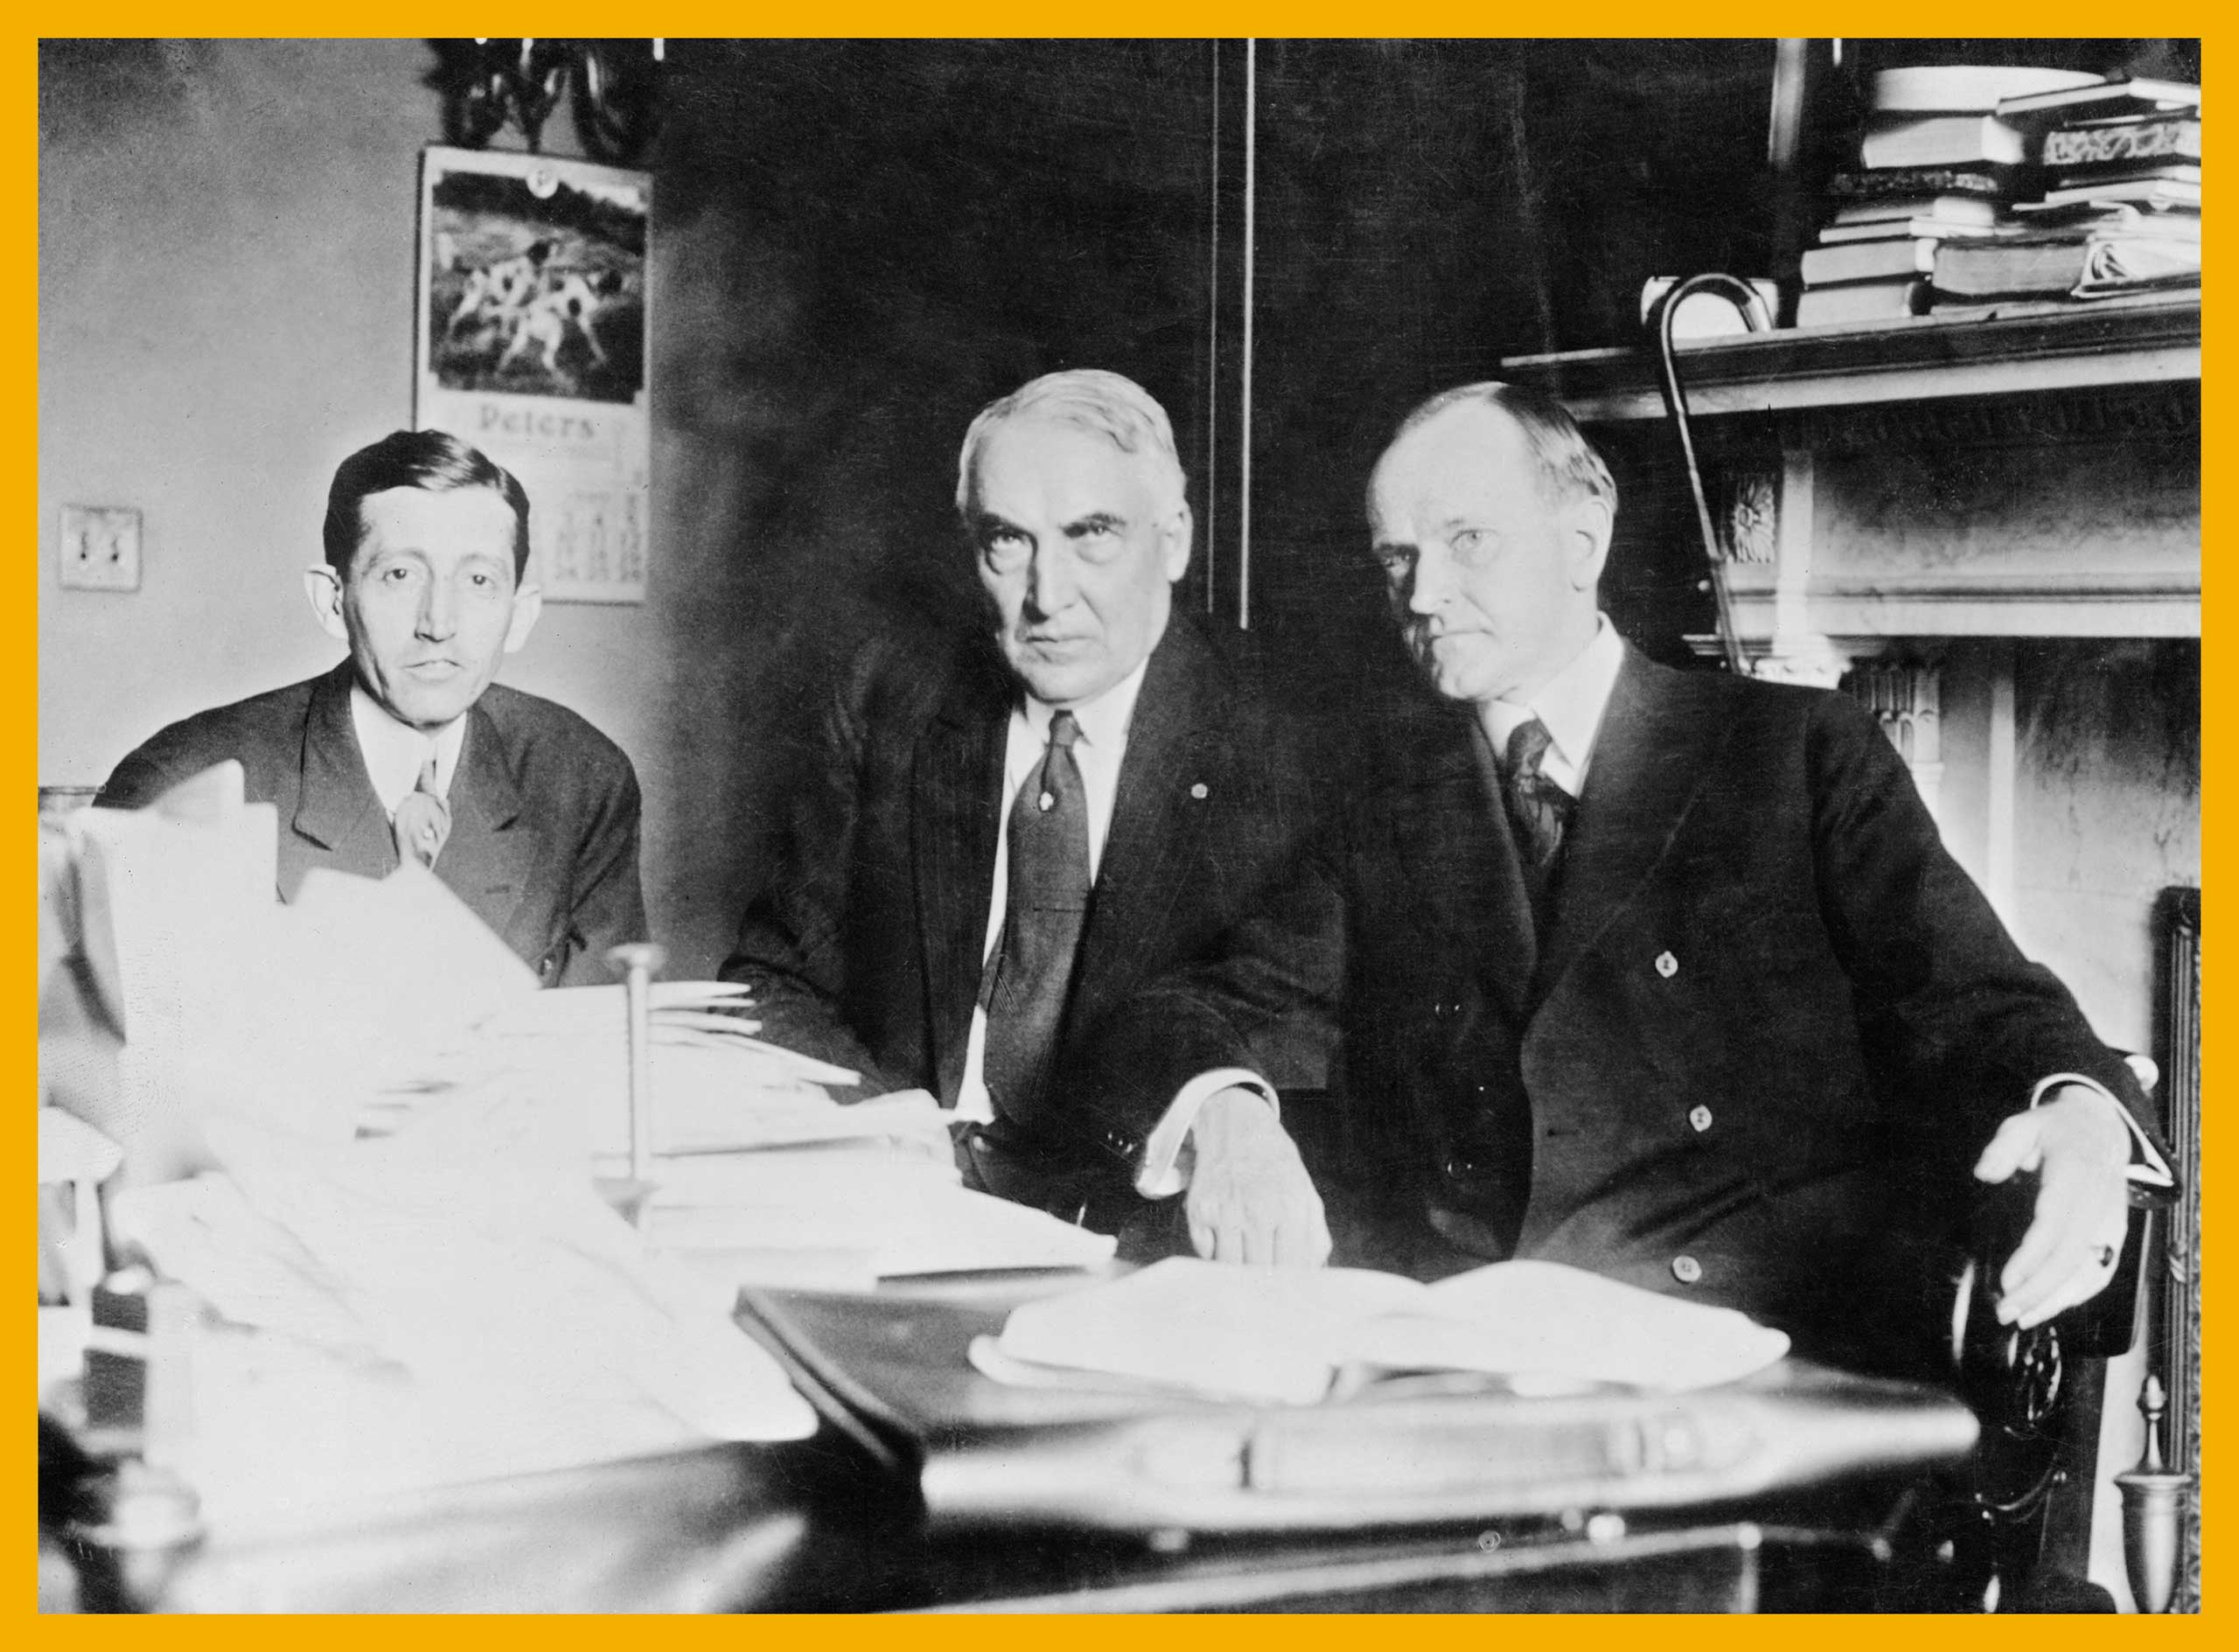 Chairman of the Republican National Committee, Will H. Hays at his first conference with Republican presidential nominee, Senator Warren G Harding, and his running mate, Governor of Massachusetts, Calvin Coolidge. Washington DC, 1920.